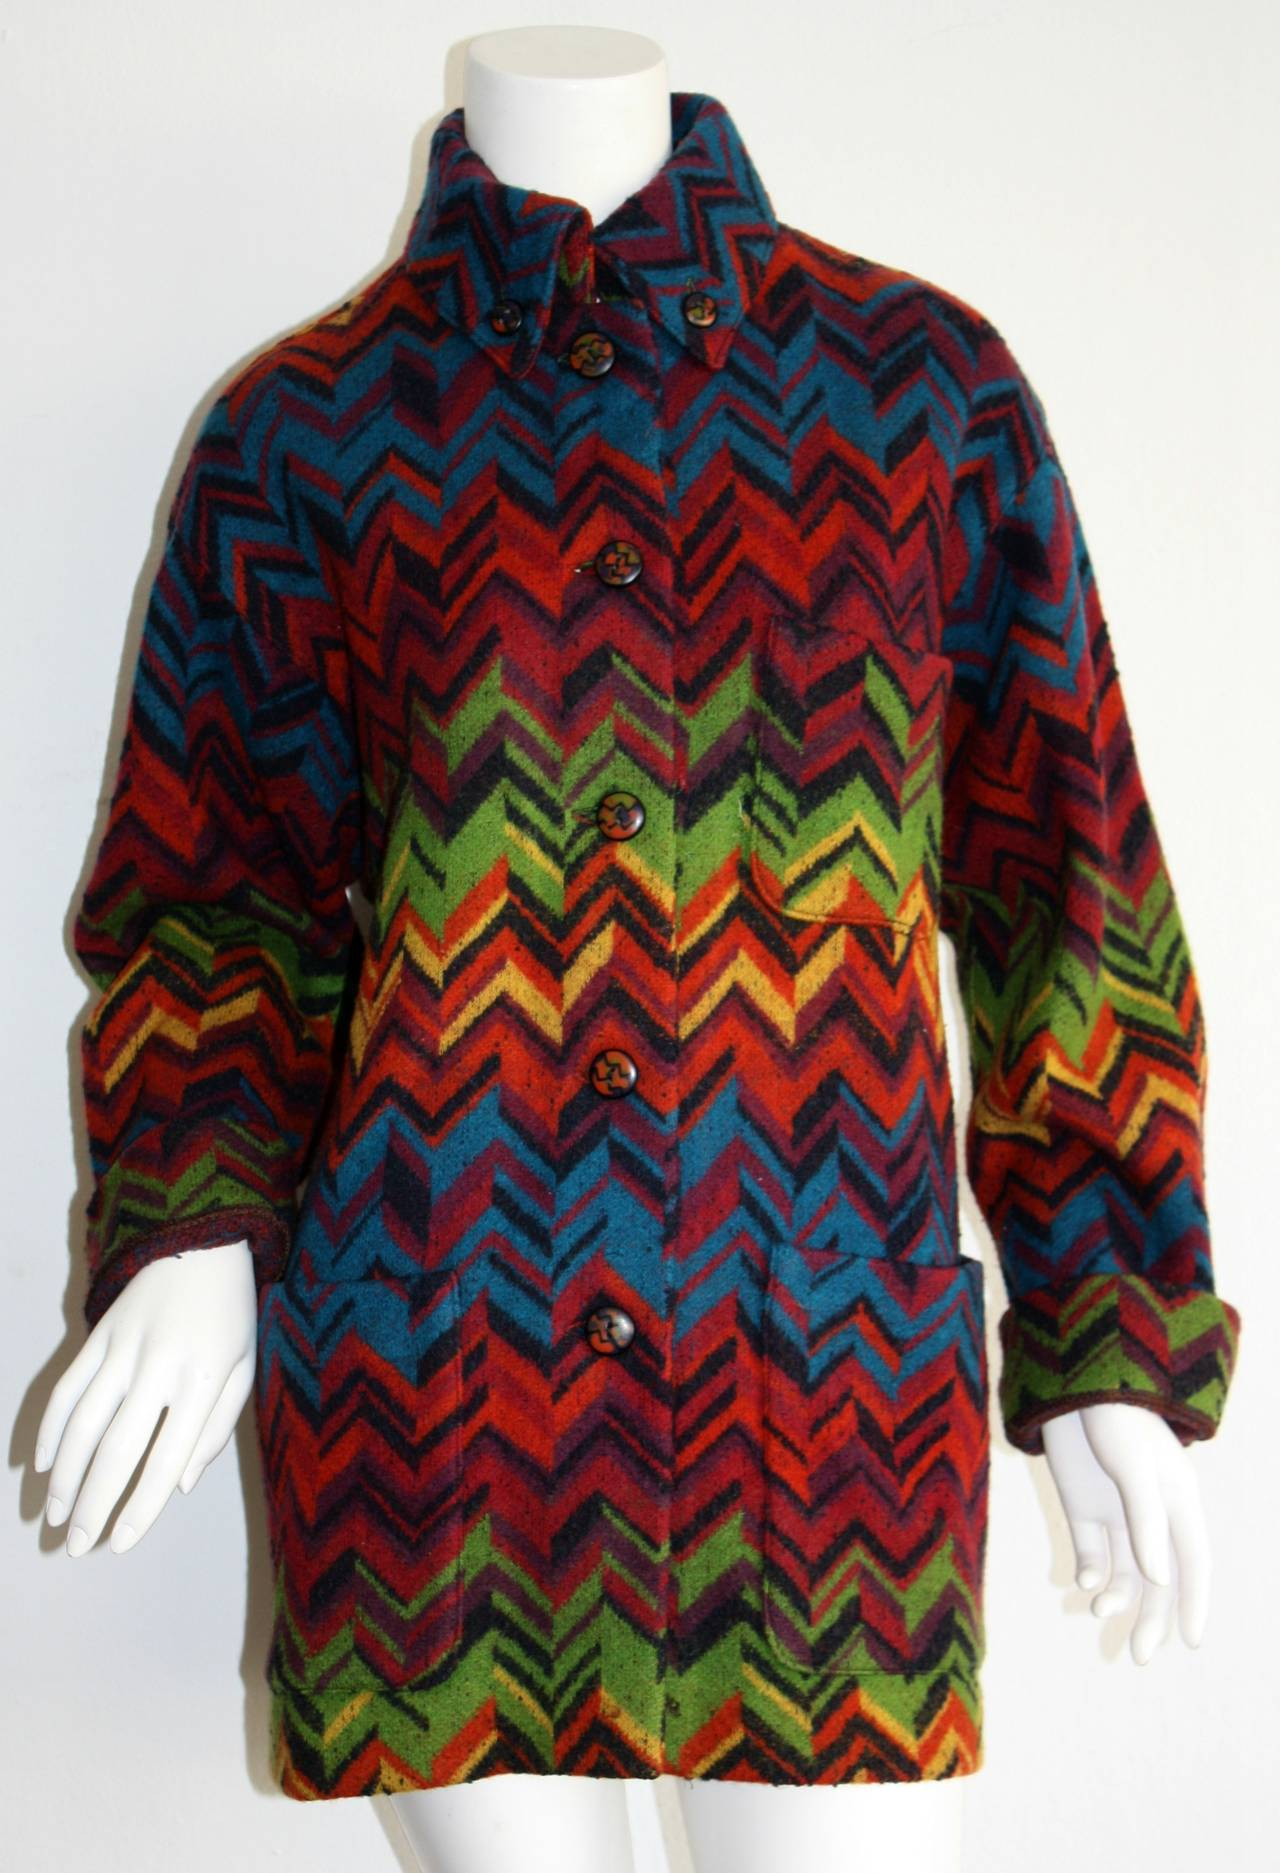 Now, this is a seriously CHIC vintage Missoni jacket!!! Signature colorful chevron stripes throughout, with wonderful matching colorful wood buttons up bodice, at collar, and cuffs! Wonderful, cozy, yet utterly chic slouchy fit! Can be worn a number